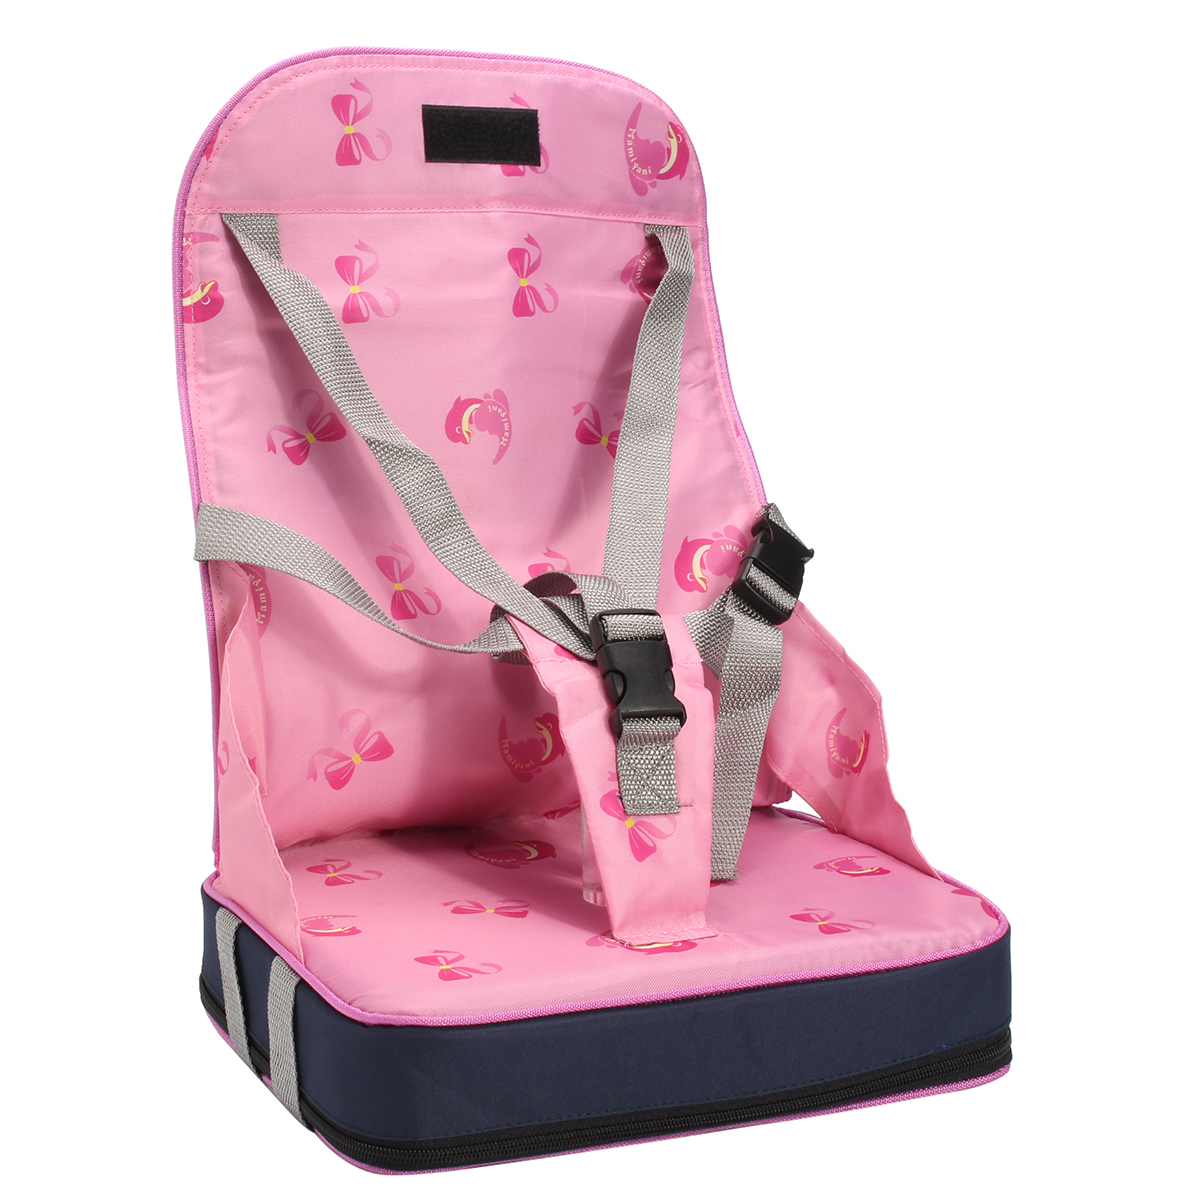 bag high chair best chairs glider foldable baby dining child portable seat toddler